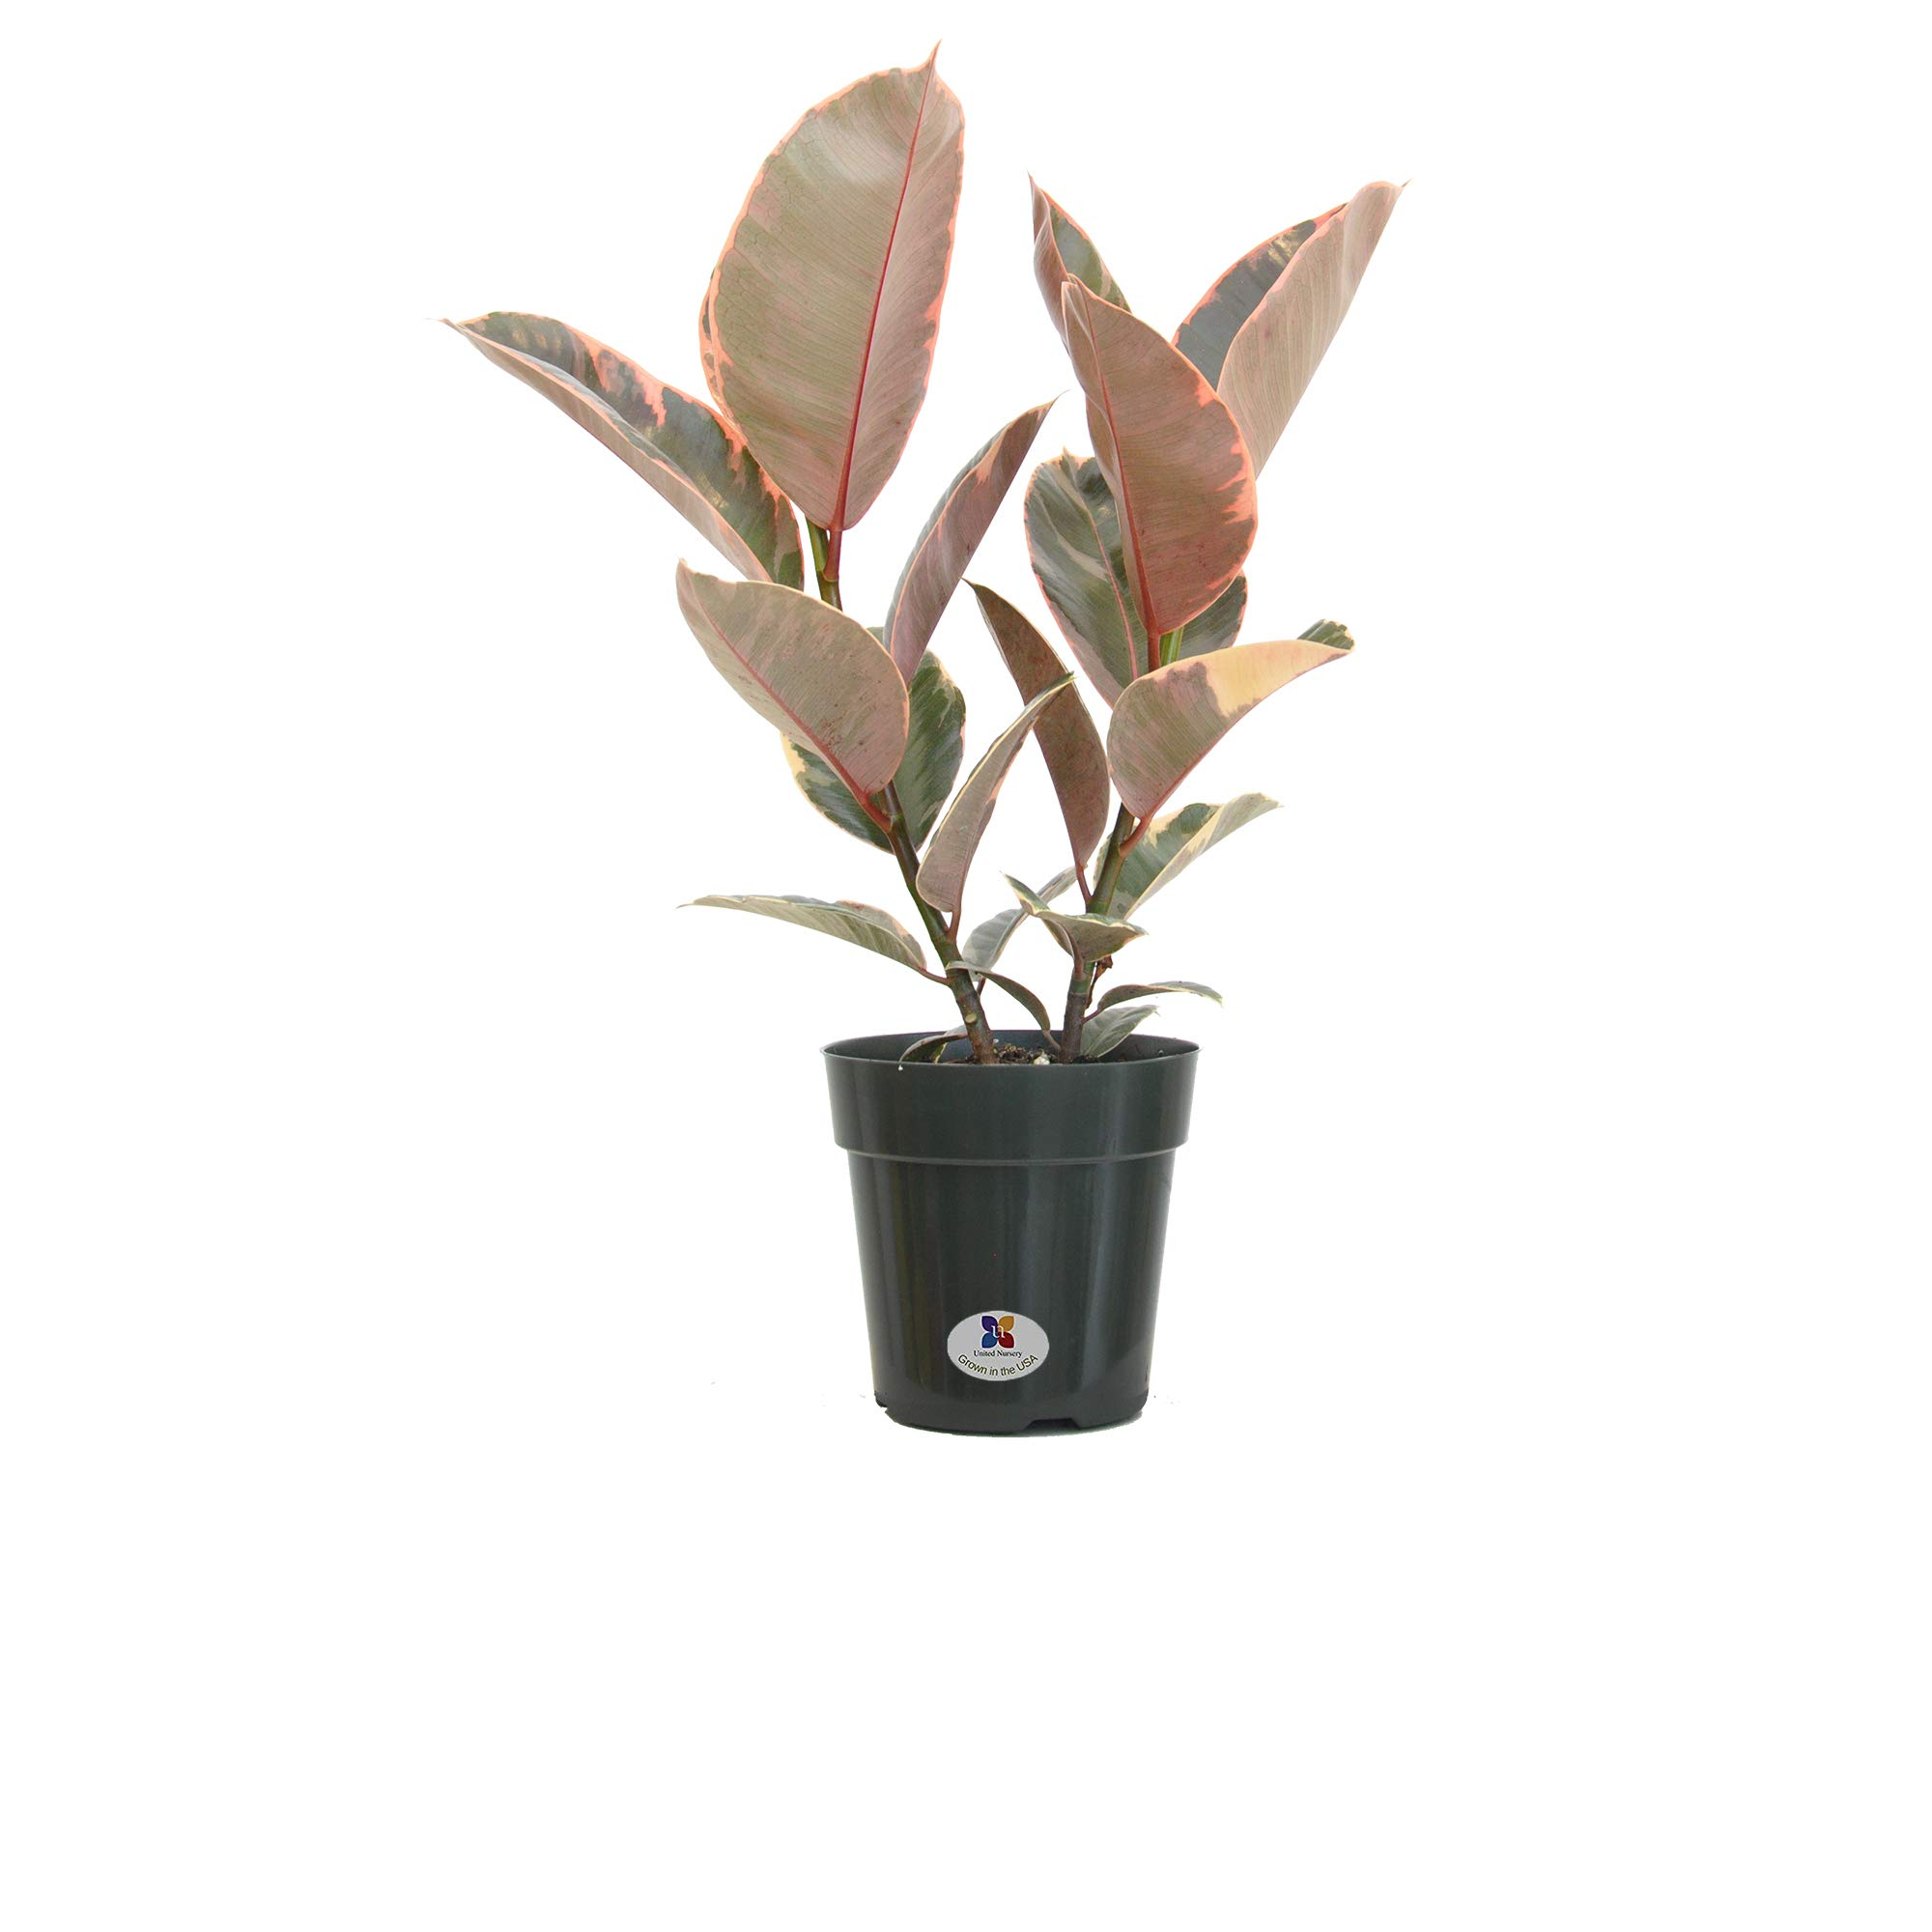 United Nursery Ficus Elastica Ruby Plant Live Rubber Tree Indoor Houseplant in 6'' Grower Pot Ships at 19-23 Inches (Green Grower Pot)